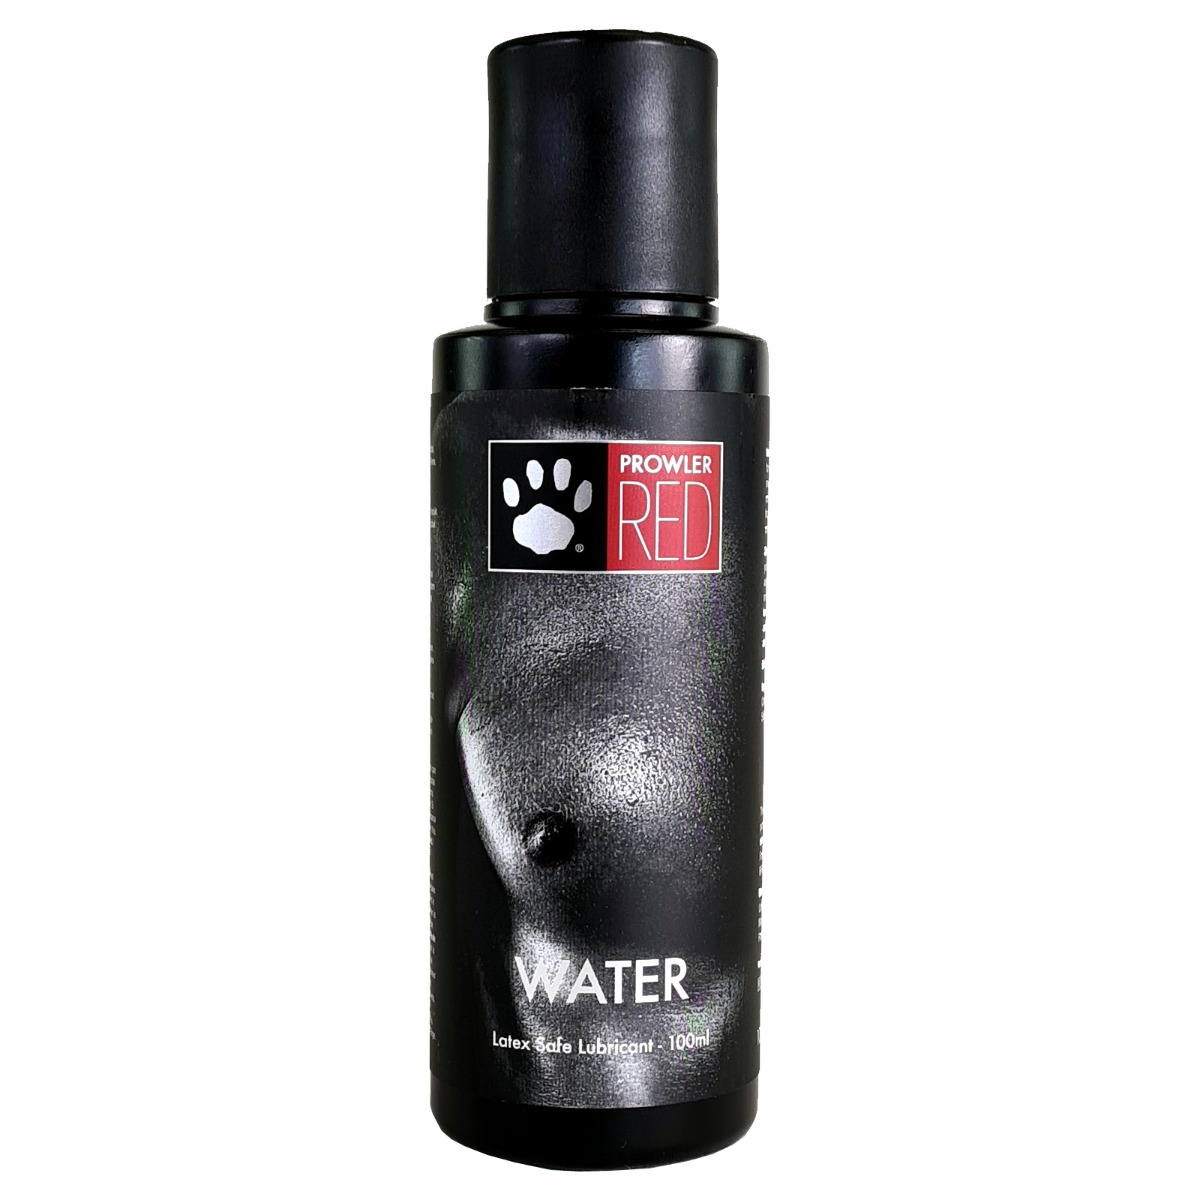 Prowler RED Water water-based Lube 100ml